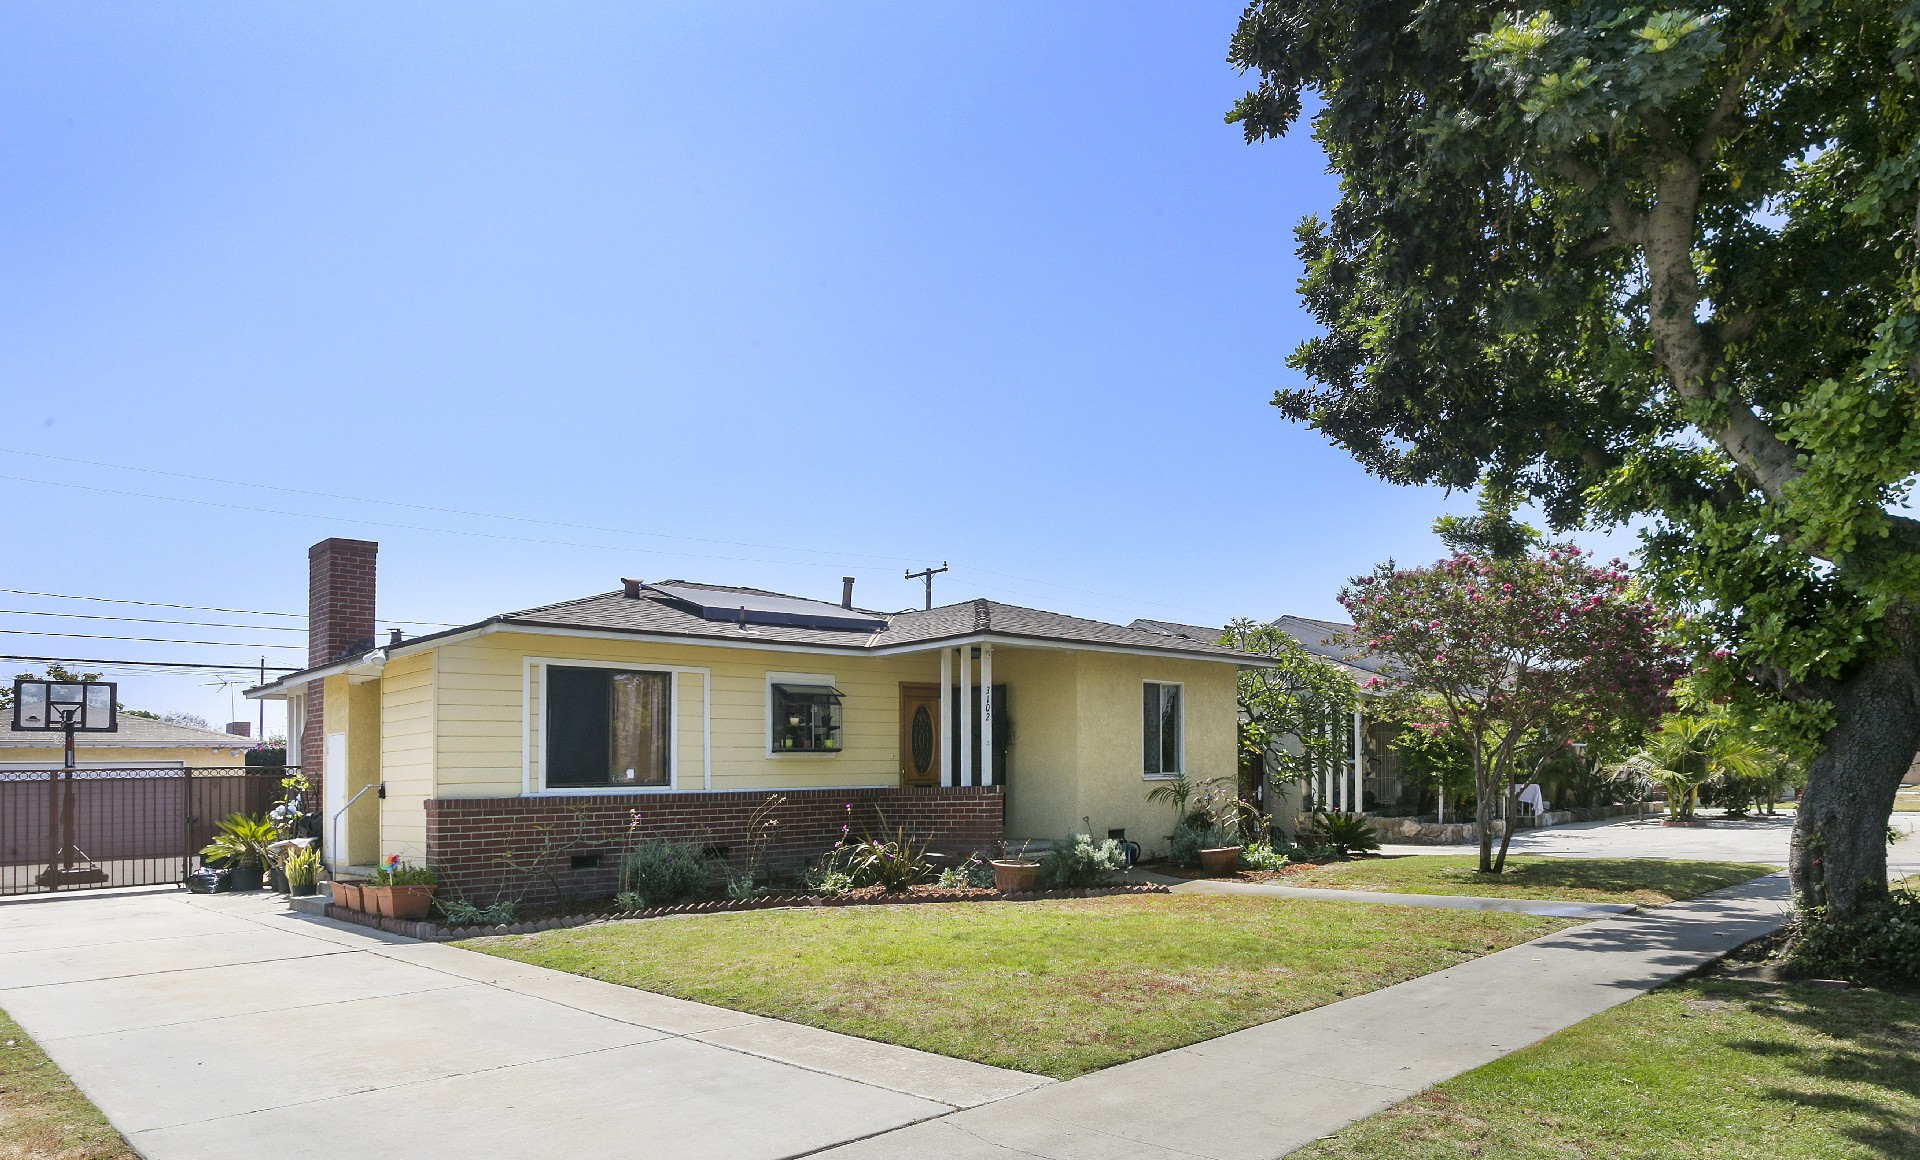 Single Family Home for Sale at 3102 N Bellflower Bl, Long Beach 90808 3102 N Bellflower Blvd Long Beach, California, 90808 United States